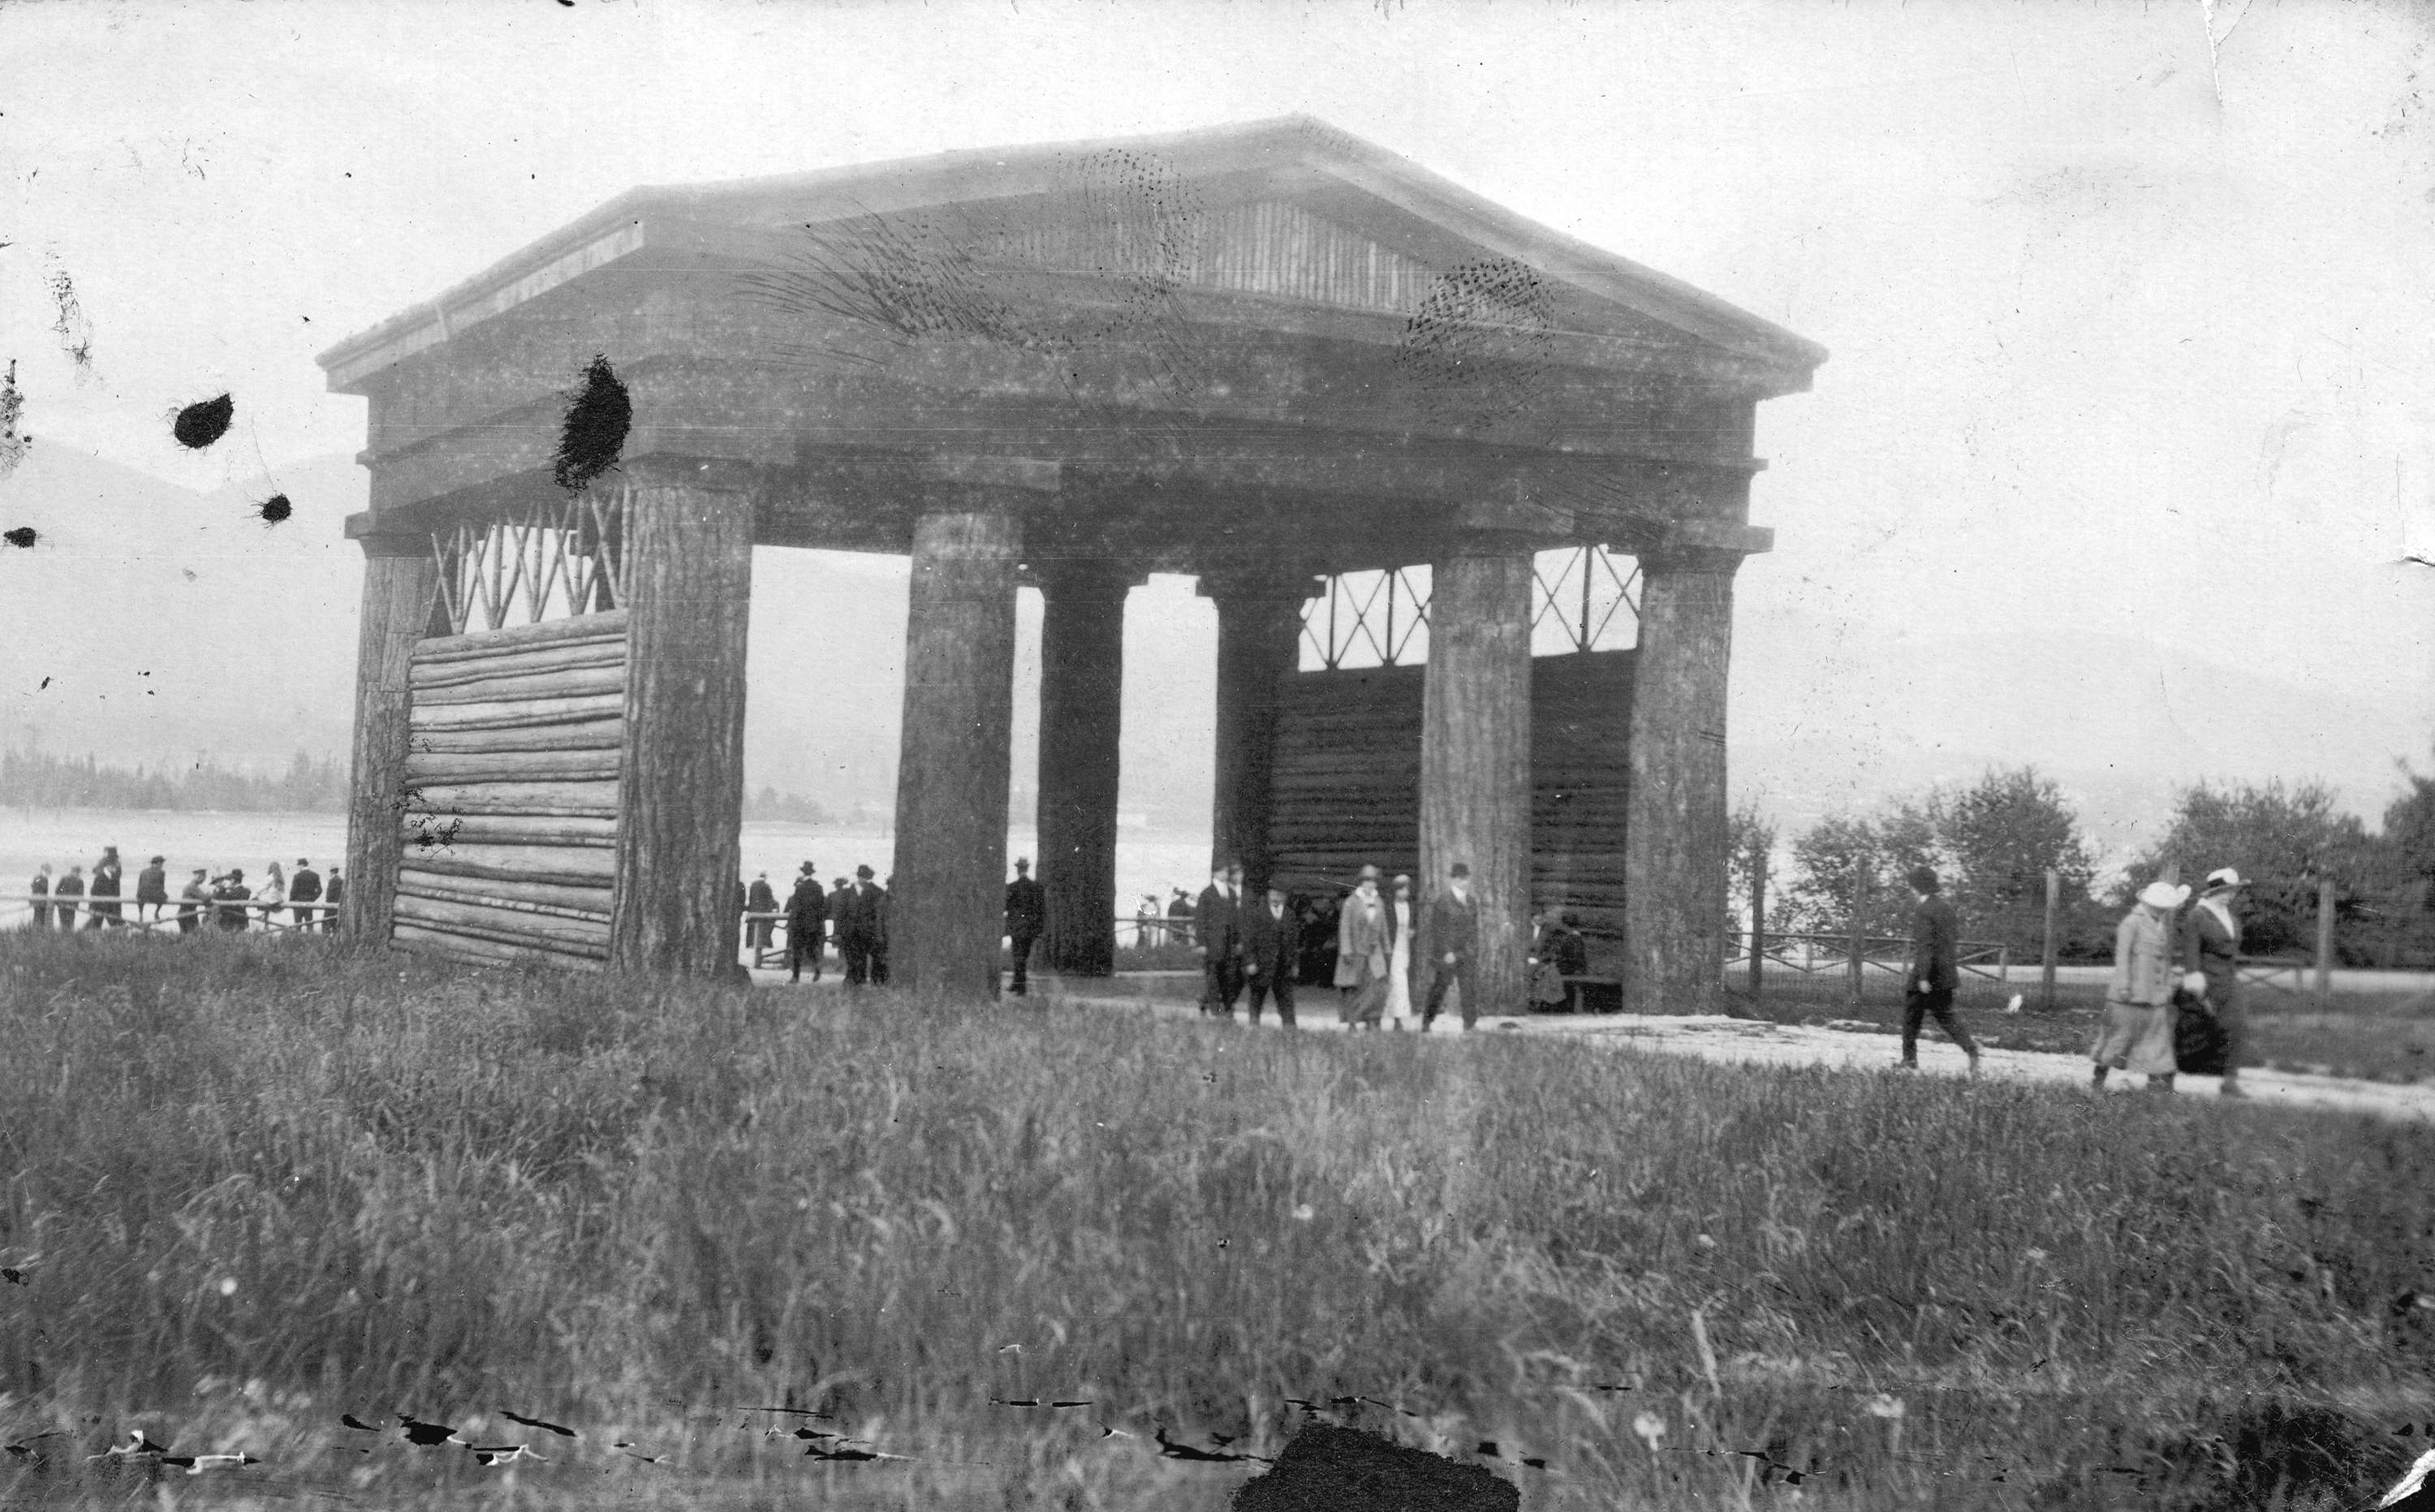 Museum of Vancouver Vancouver, Lumberman's Arch, Vancouver, B.C. - City of Vancouver Archives